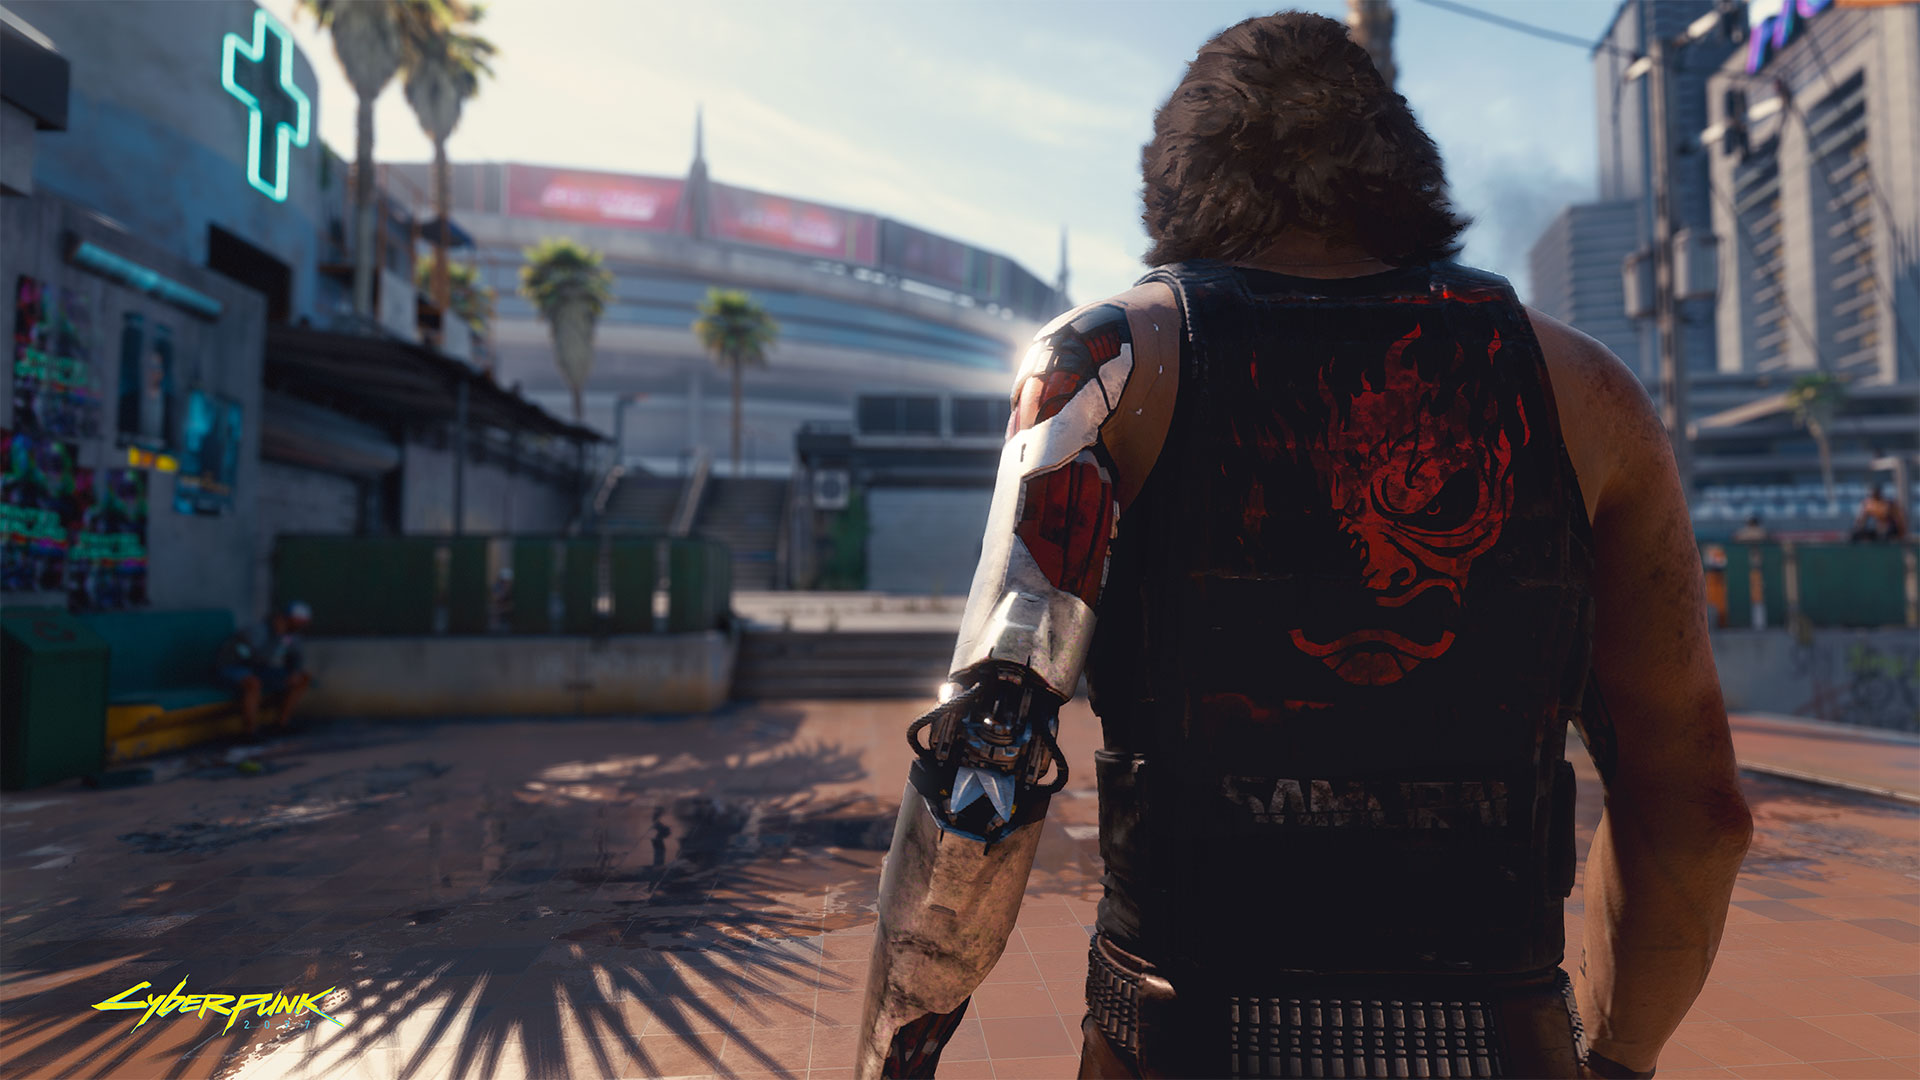 A look at Cyberpunk 2077's map shows that last year's leak was accurate enough screenshot